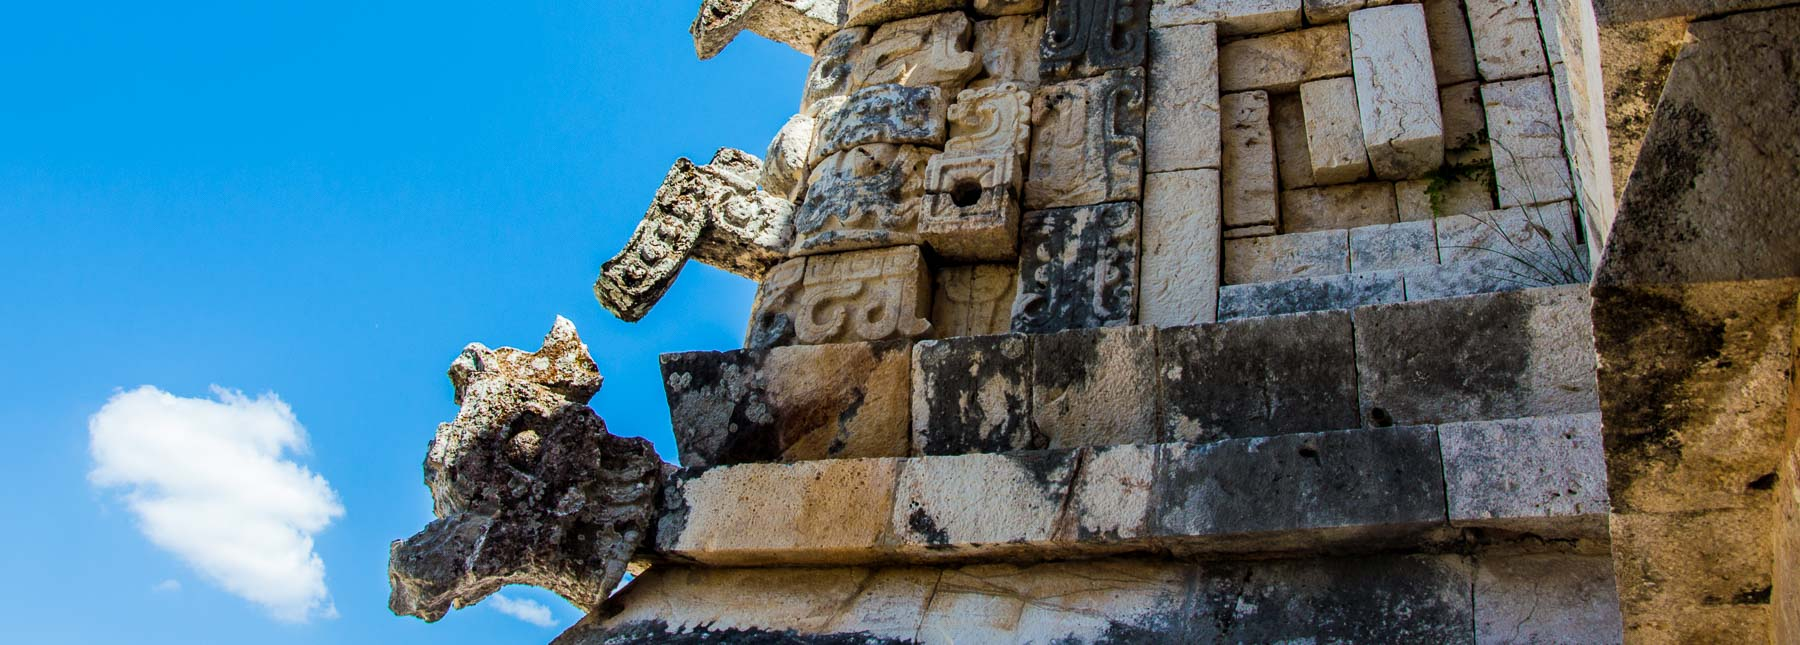 Chac masks on the corner of Uxmal building.